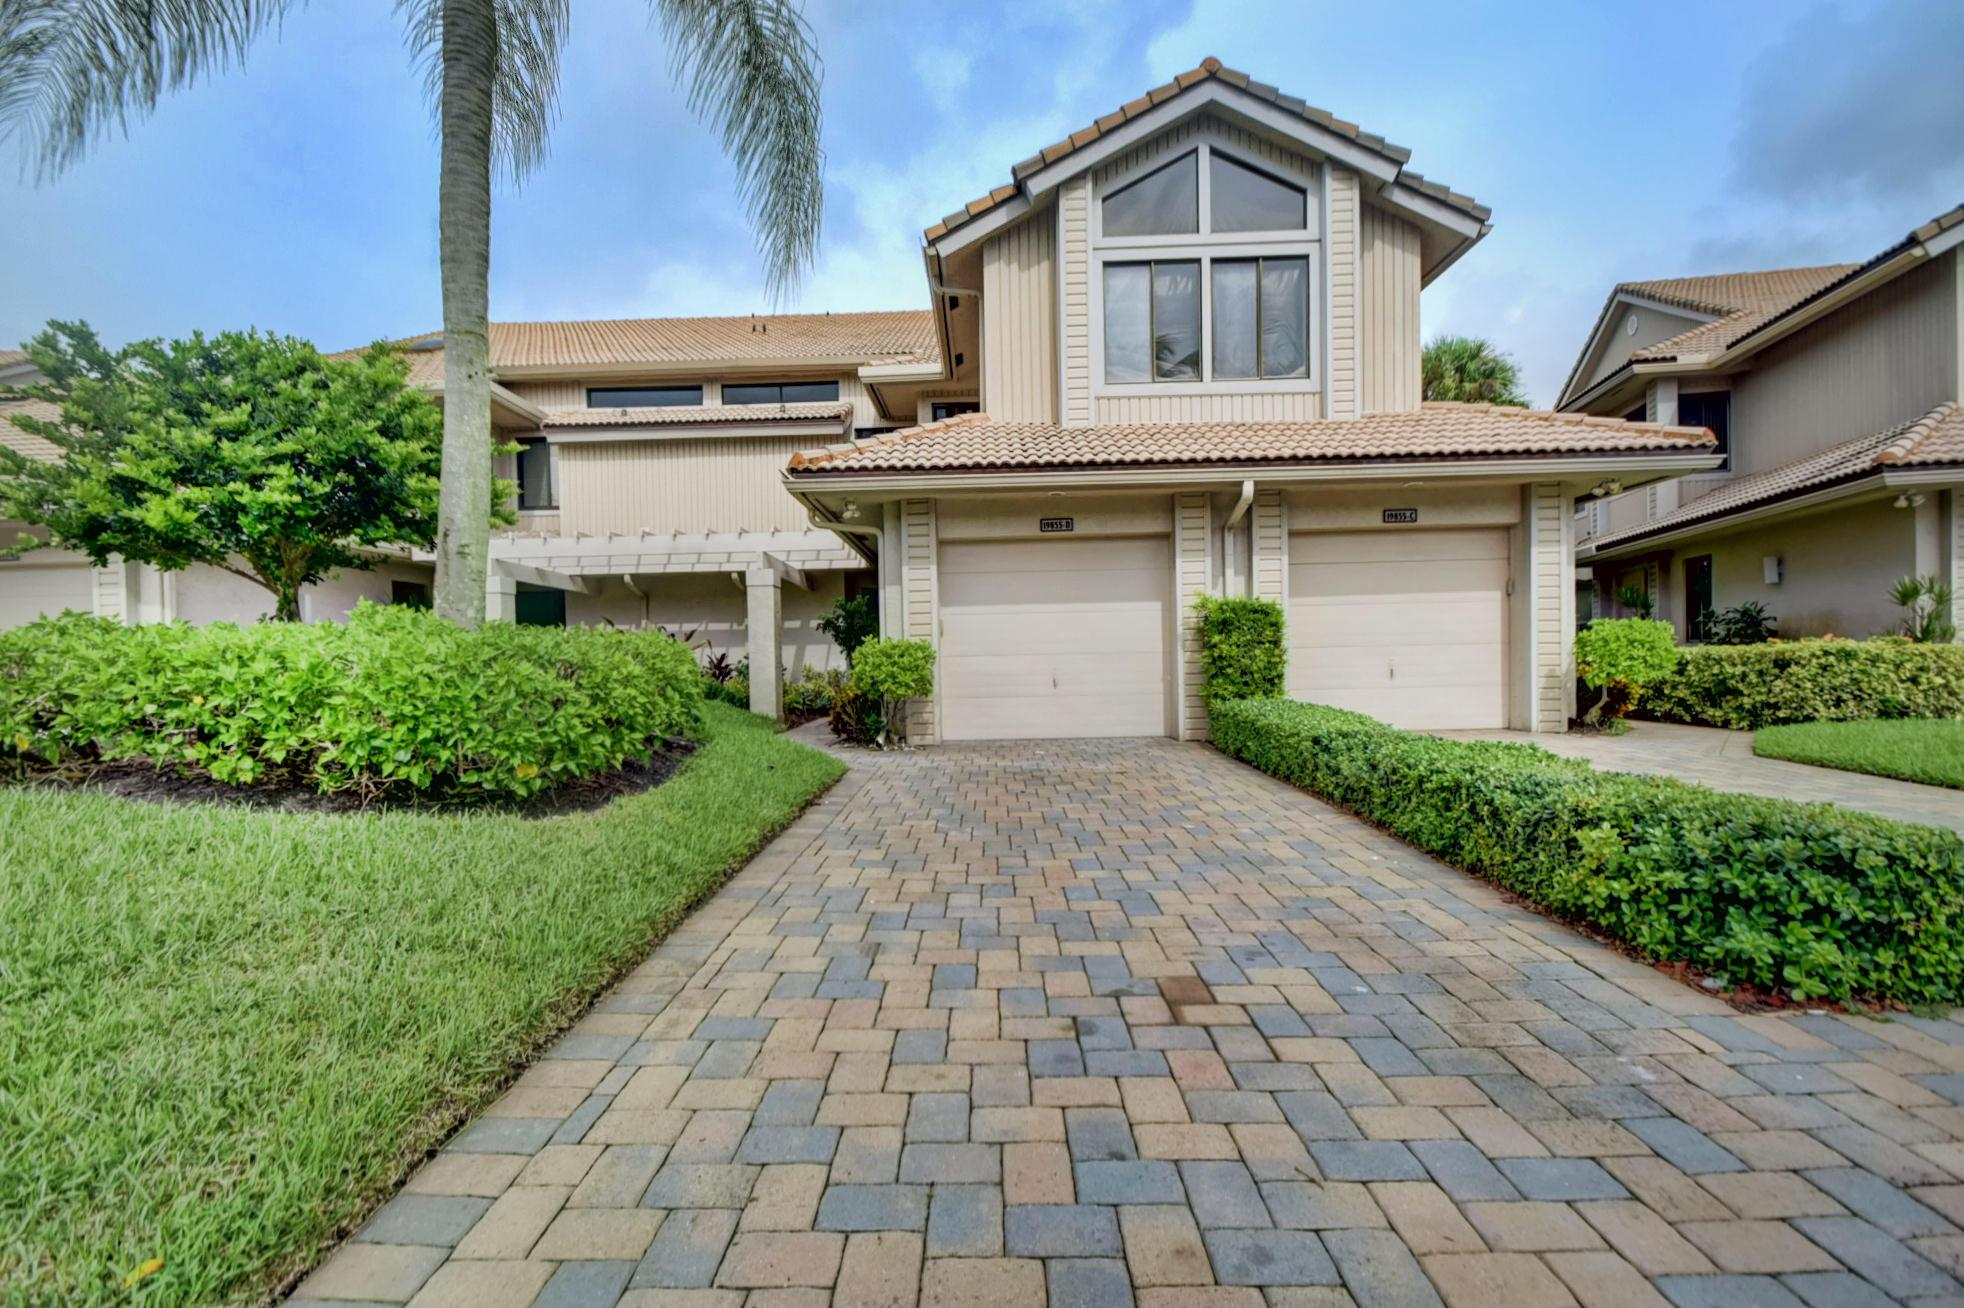 Boca Raton: Charter Cay - listed at 499,000 (19855 Planters Blvd #D)